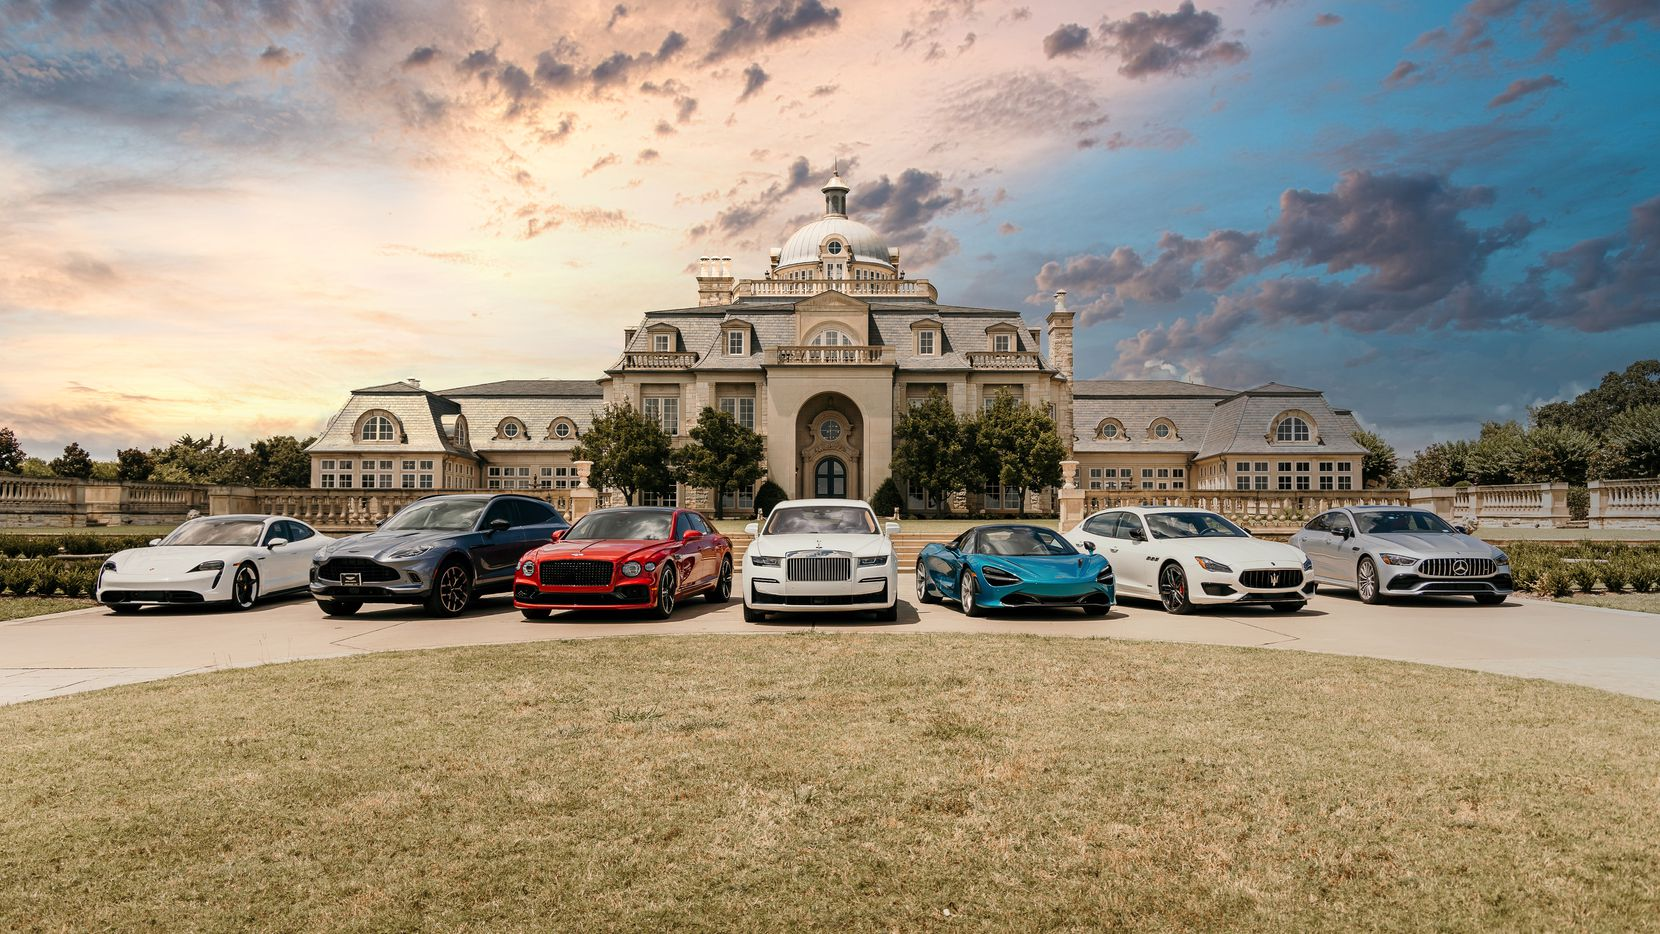 The Olana, a $50 million Denton County mansion rented as a high-end event and wedding venue, serves as a backdrop for luxury vehicles from Avondale Group's dealerships.